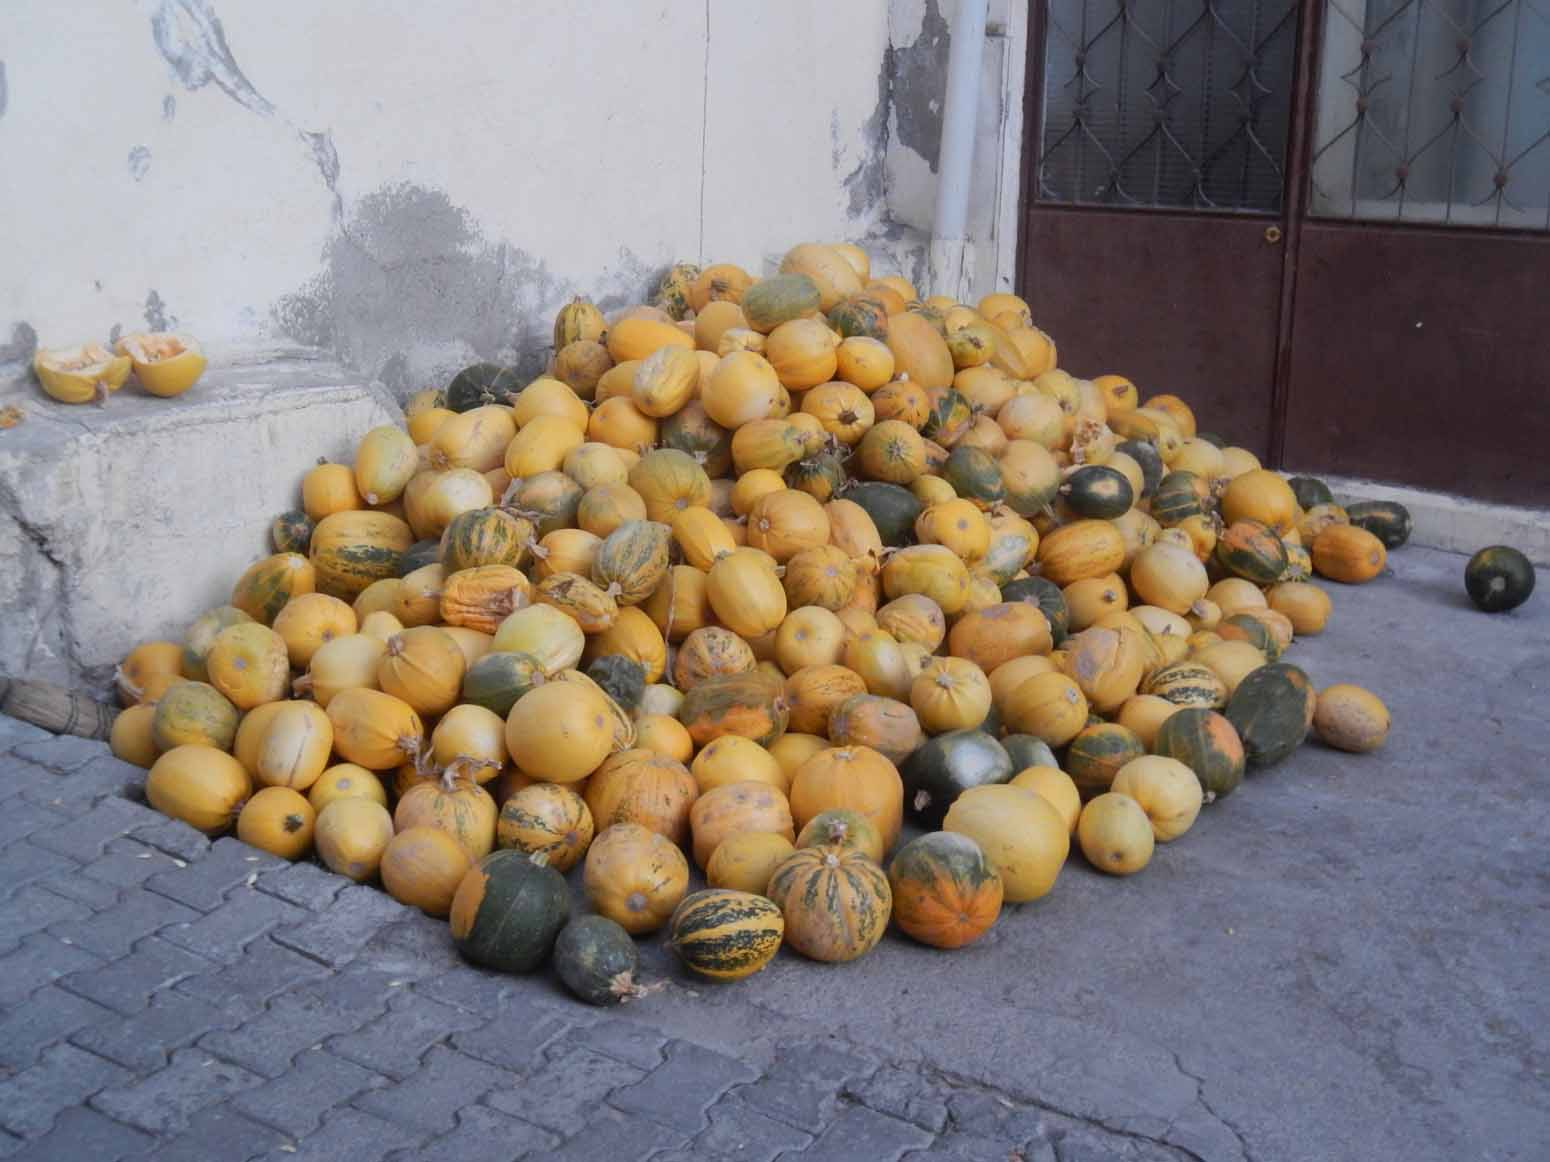 A pile of pumpkins in Goreme